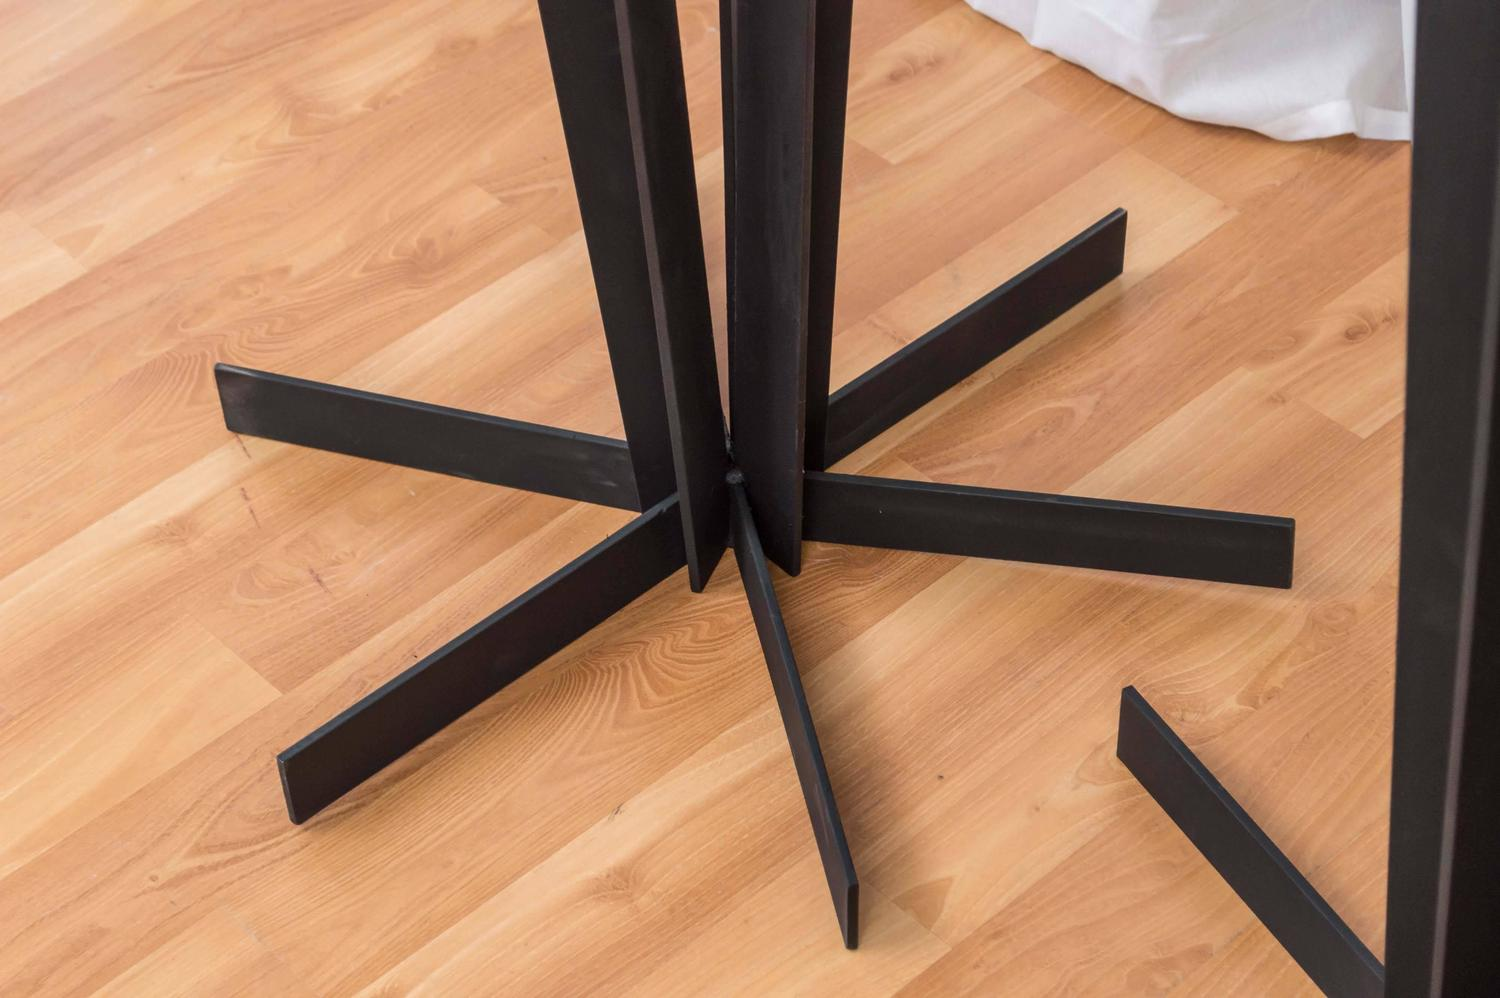 Tall Wrought Iron Plant Stands Pair Of Sculptural And Tall Wrought Iron Plant Stands For